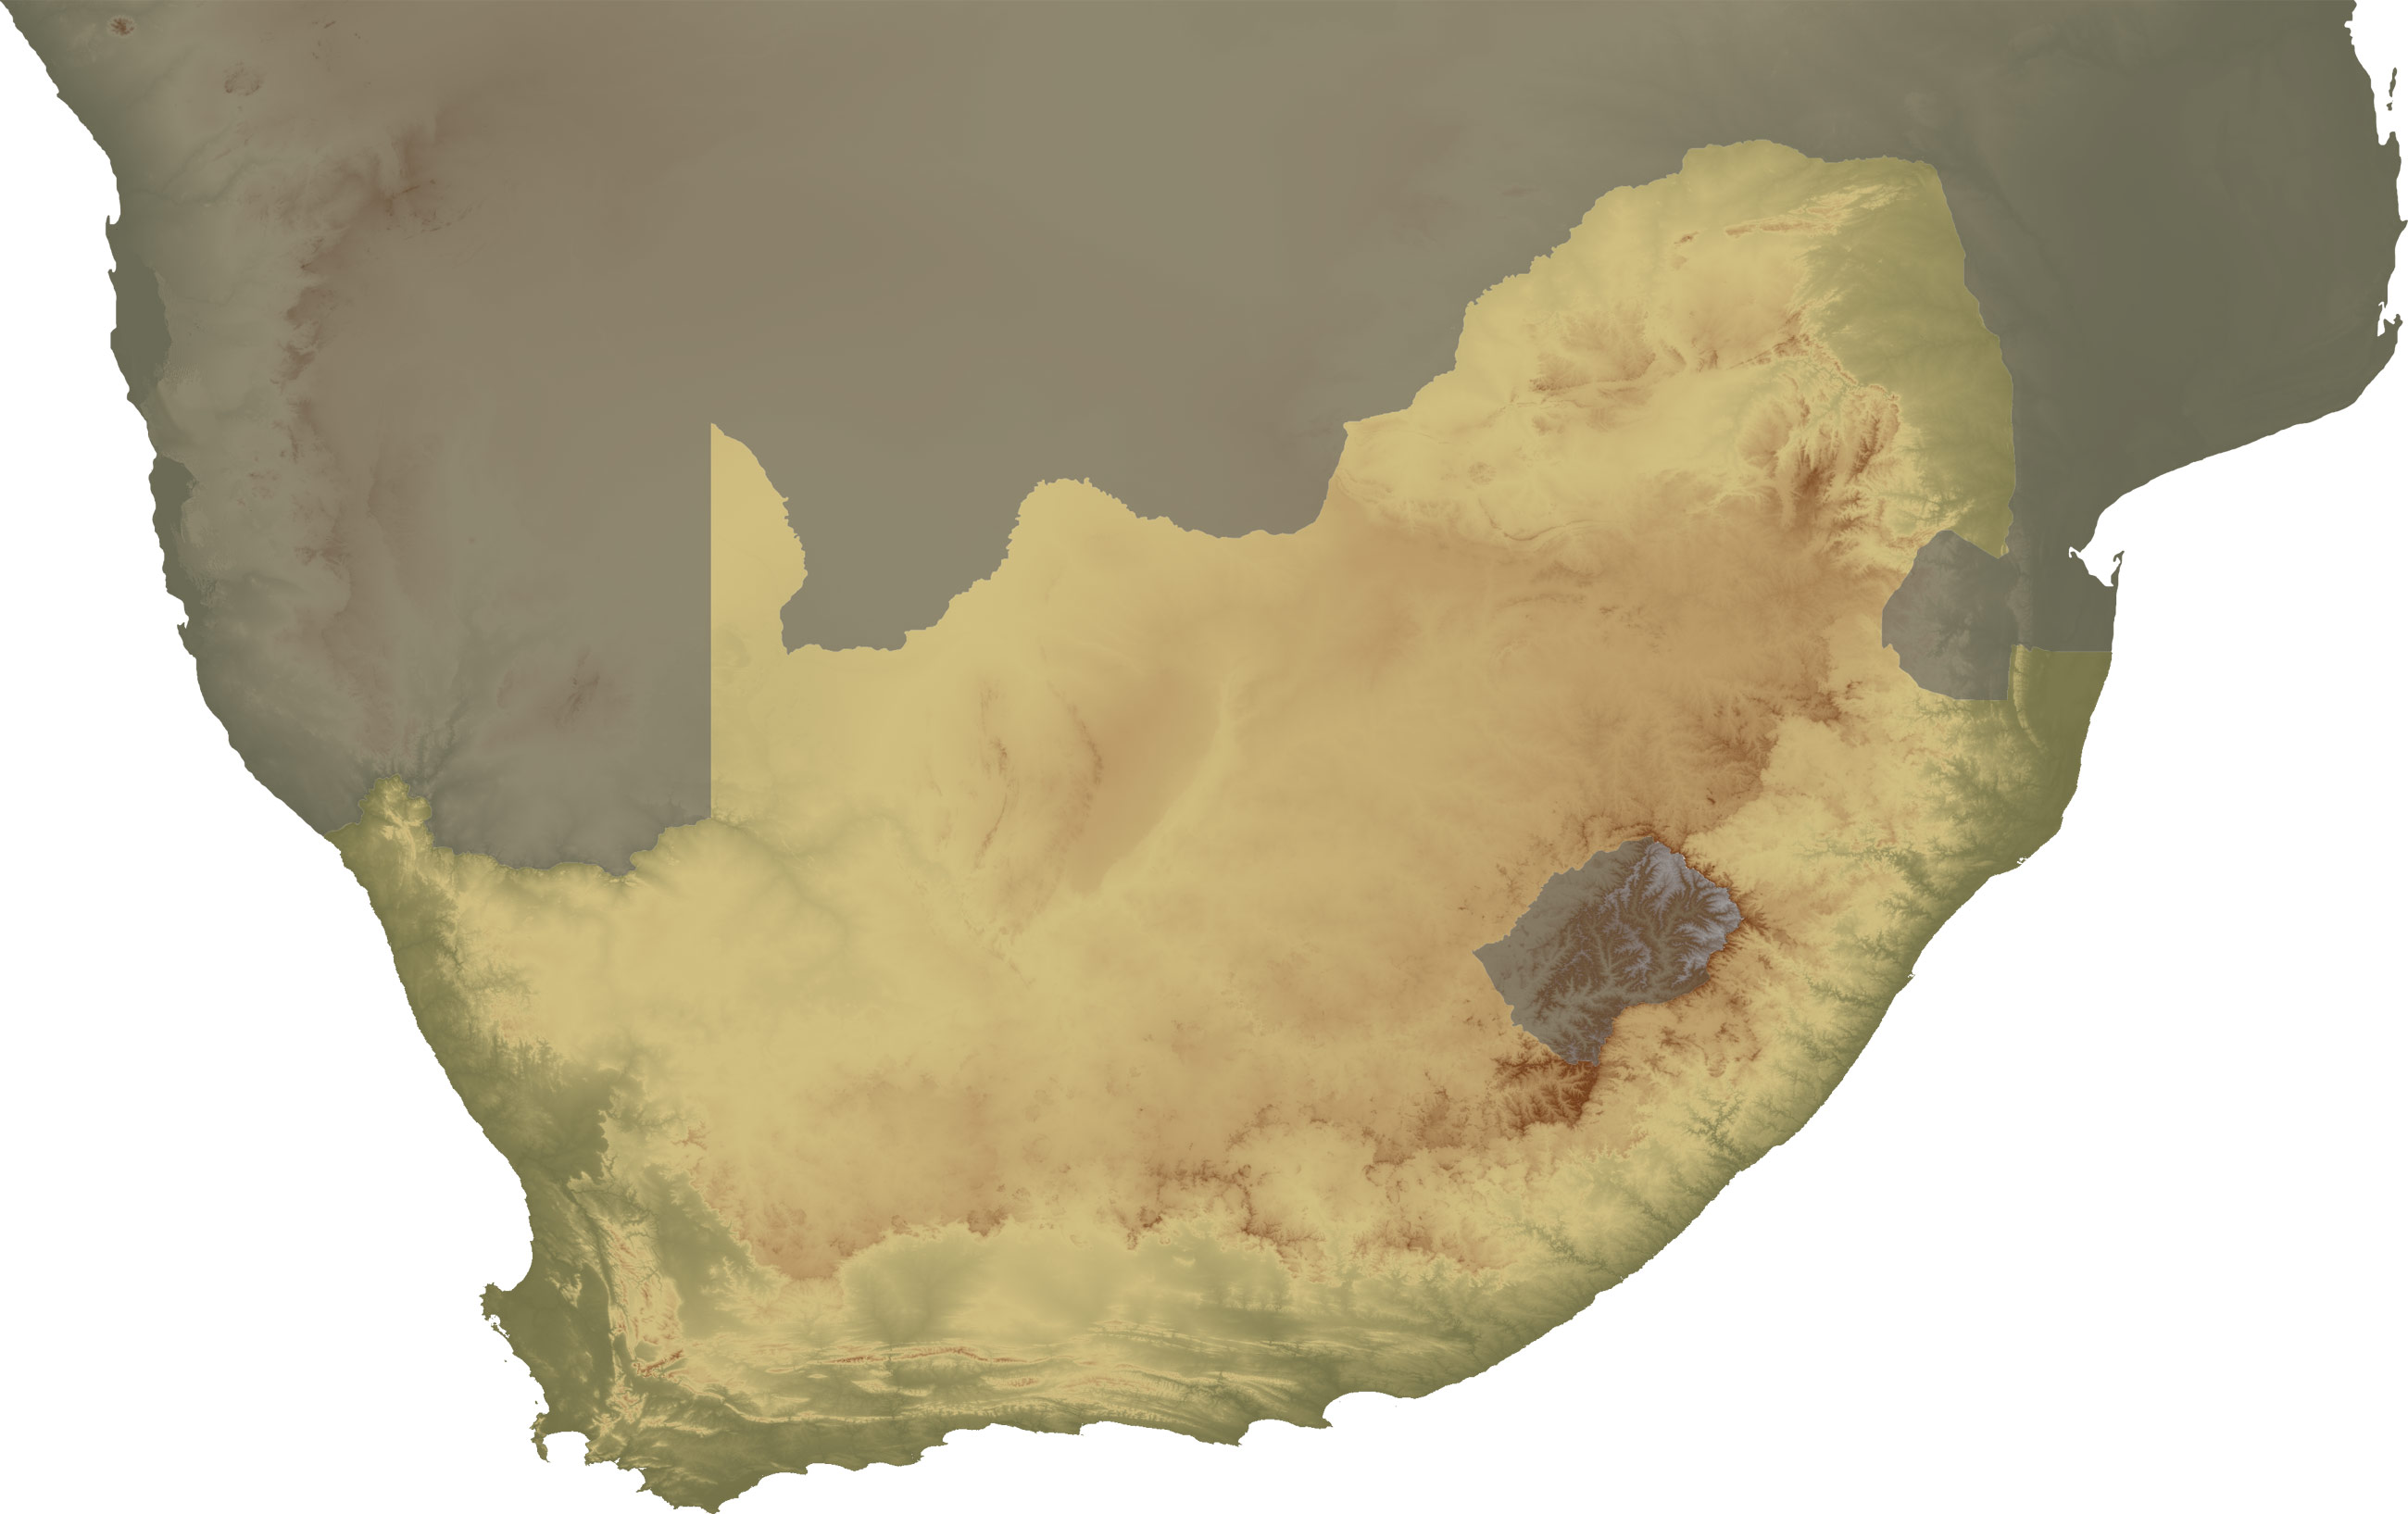 South Africa Topo Continent large map